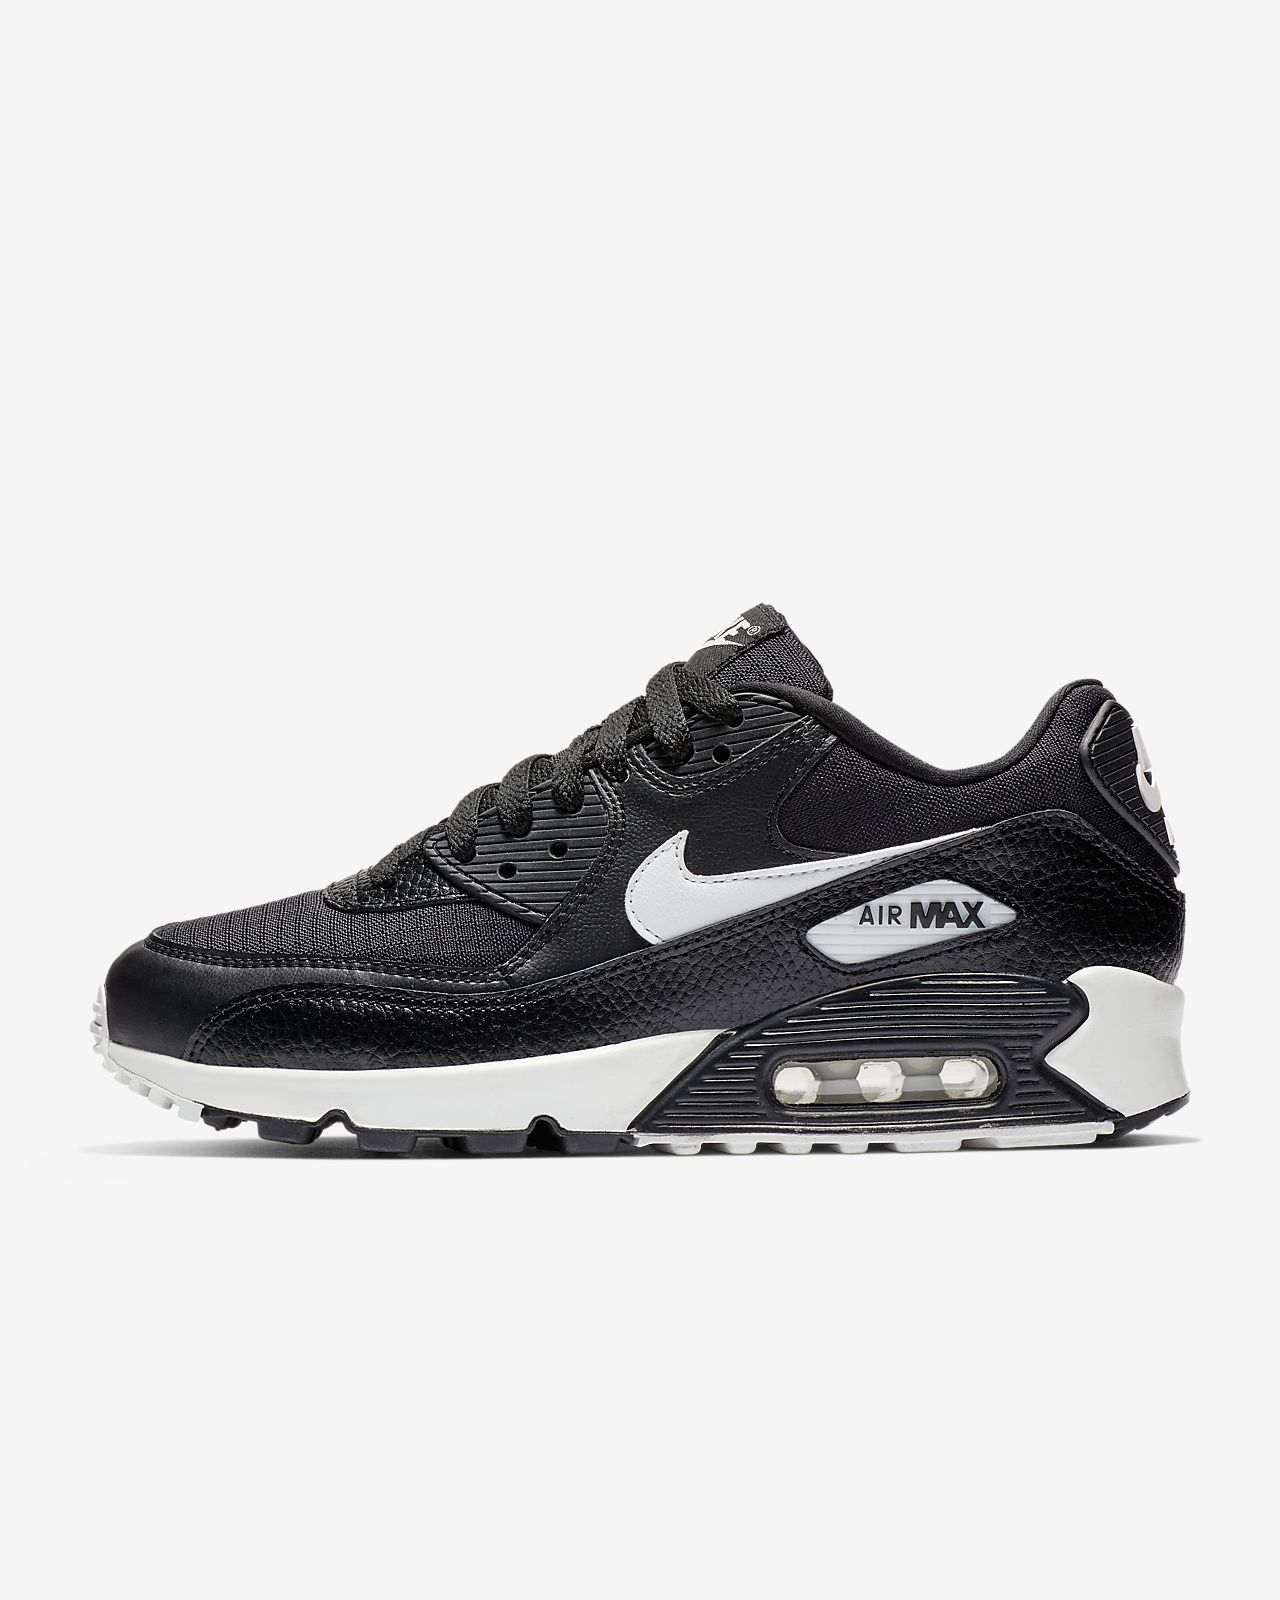 42cd71f37b2 Nike Air Max 90 Women s Shoe. Nike.com GB